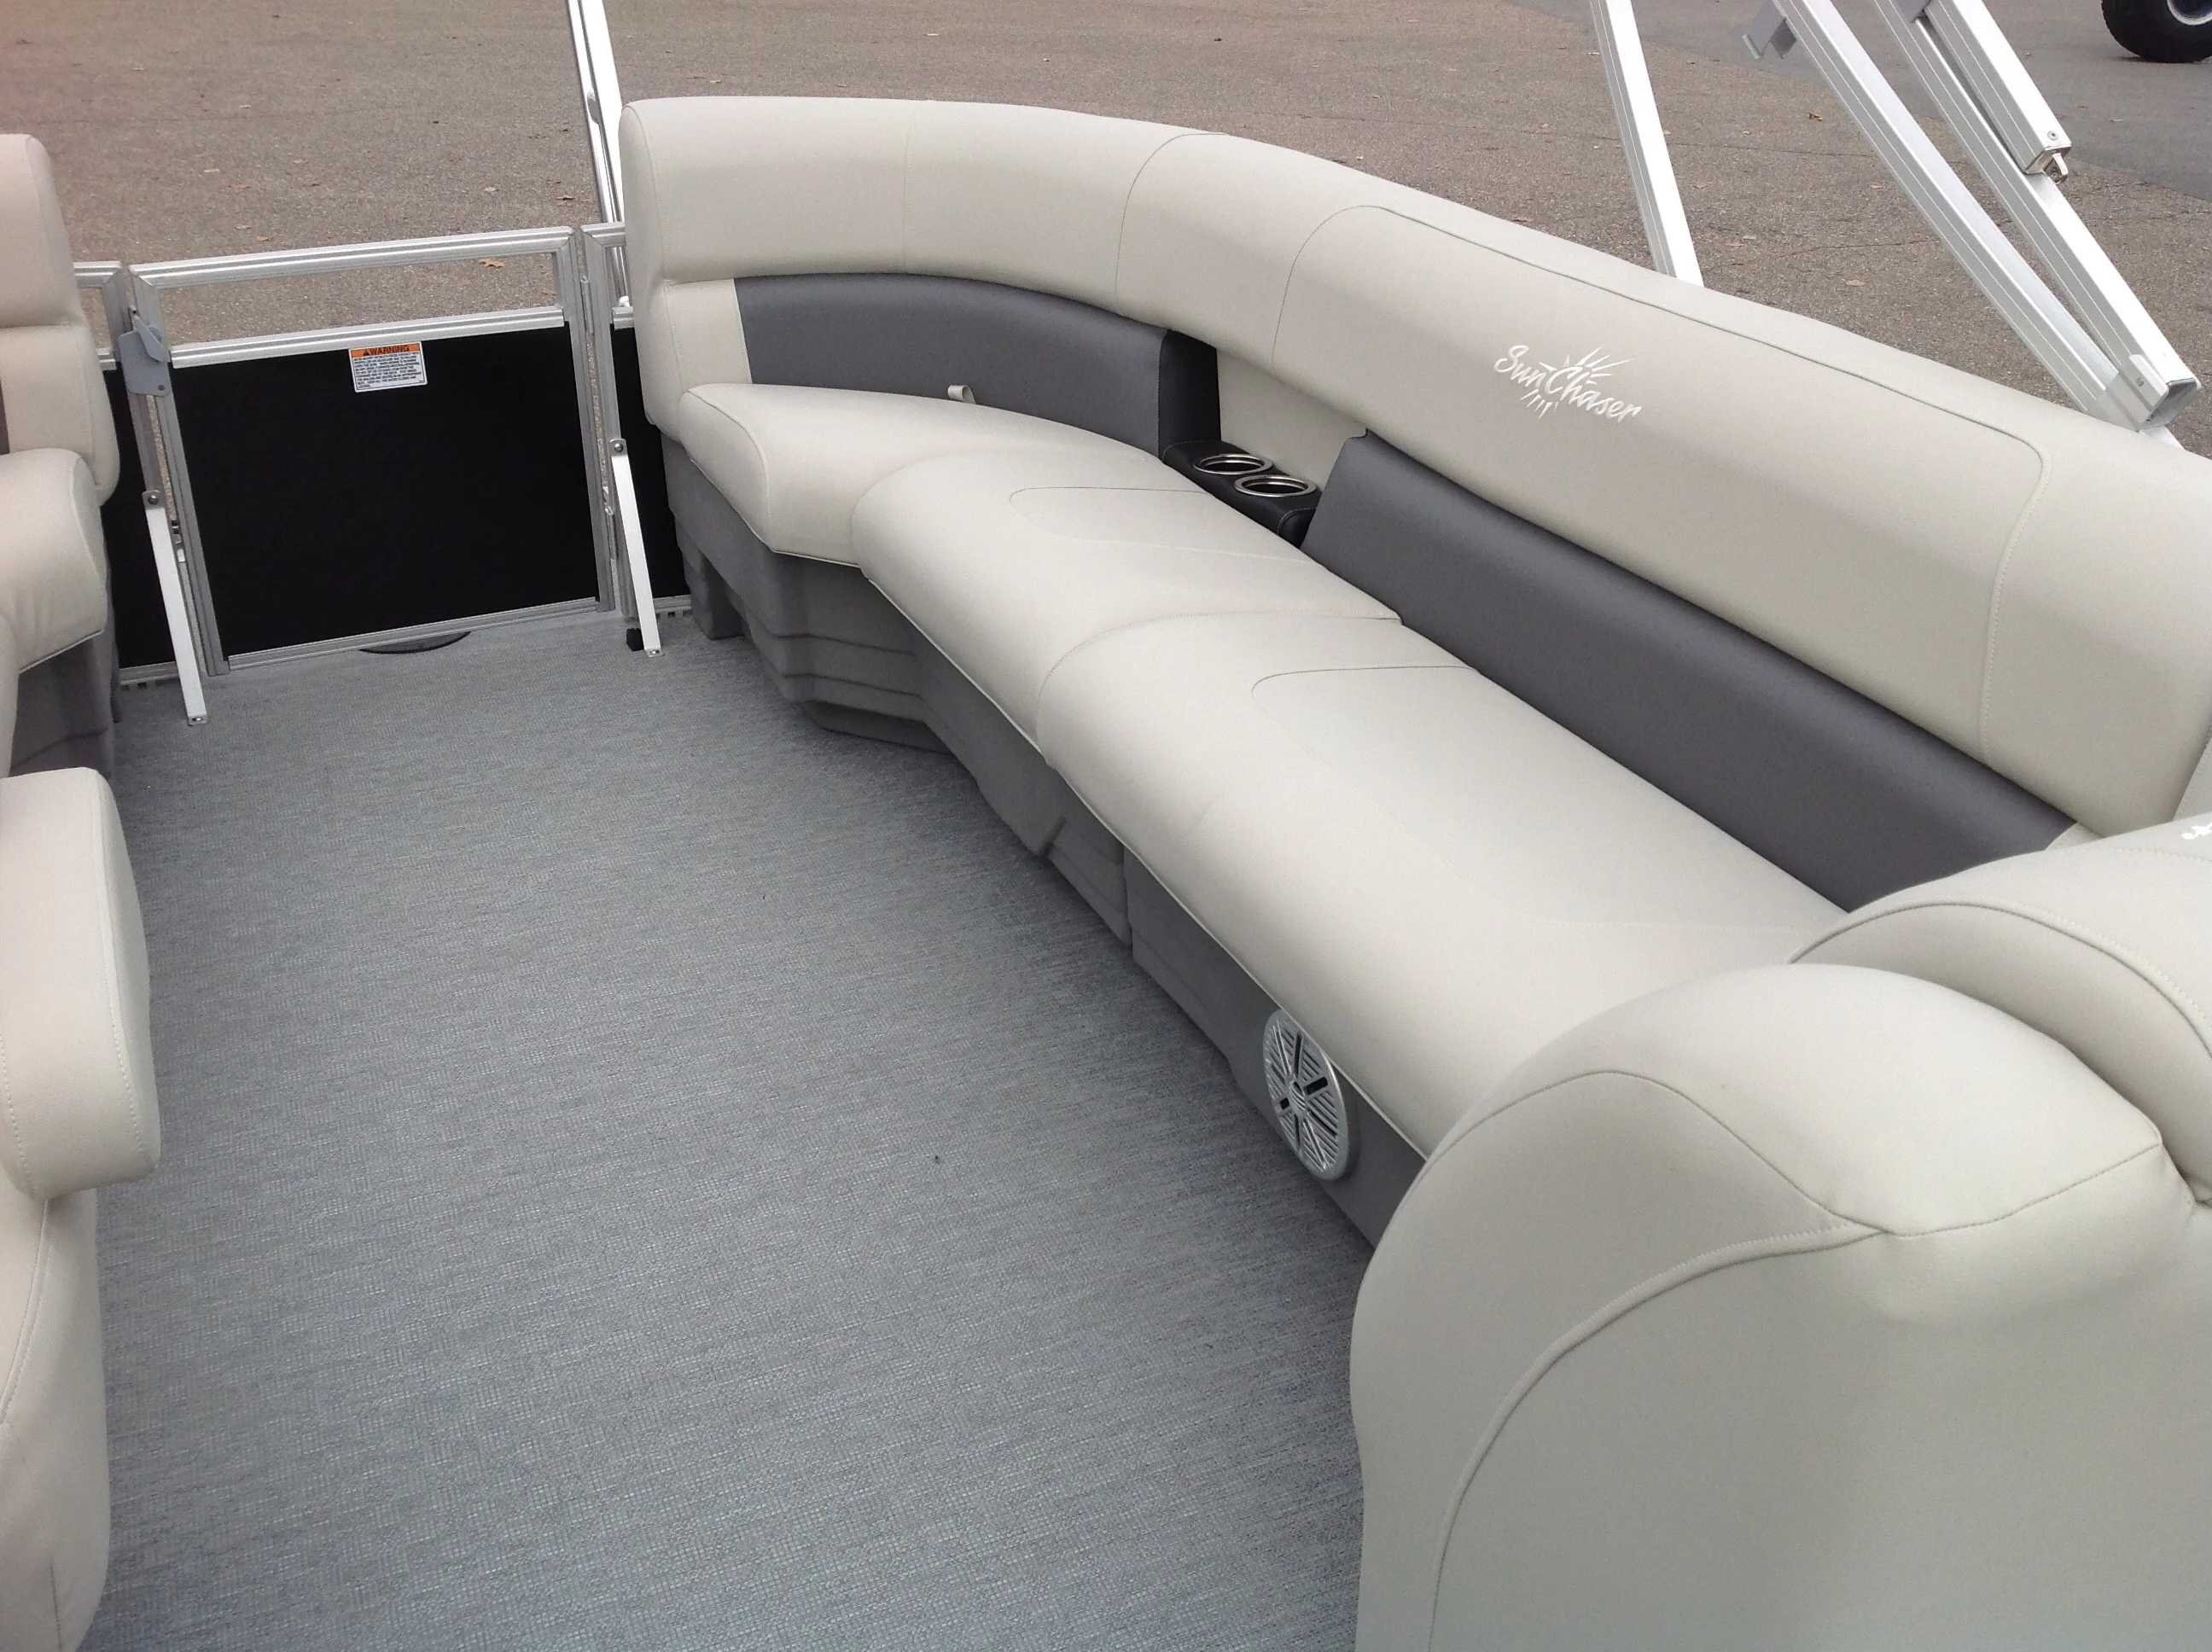 2021 SunChaser boat for sale, model of the boat is Sunchaser & Image # 3 of 10